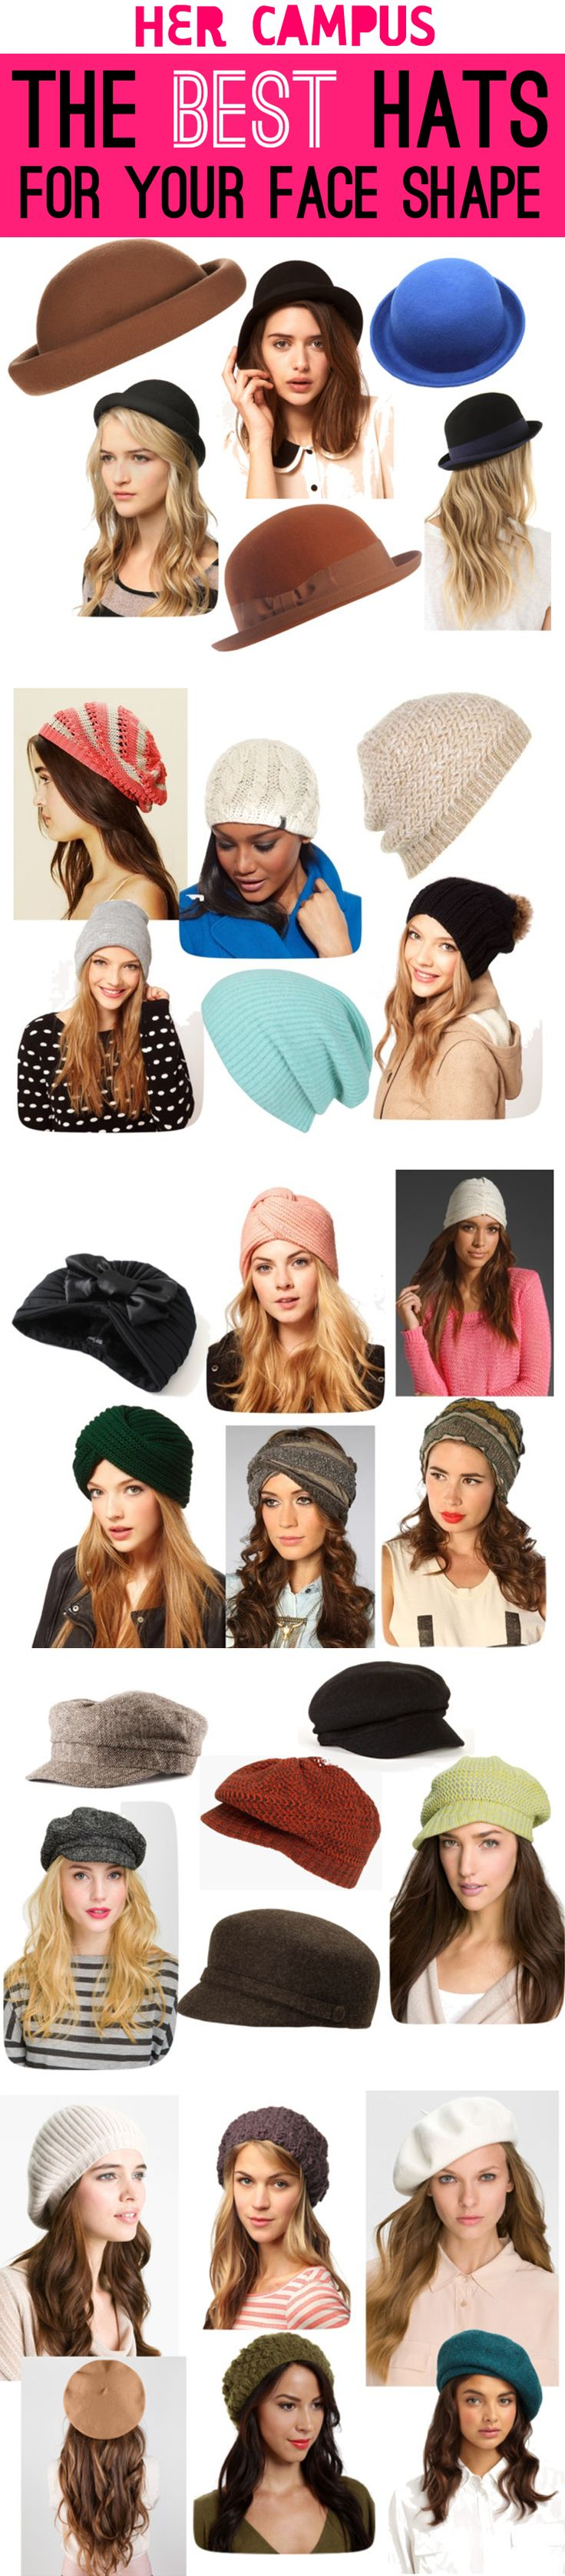 Find the best hat to flatter your face shape!